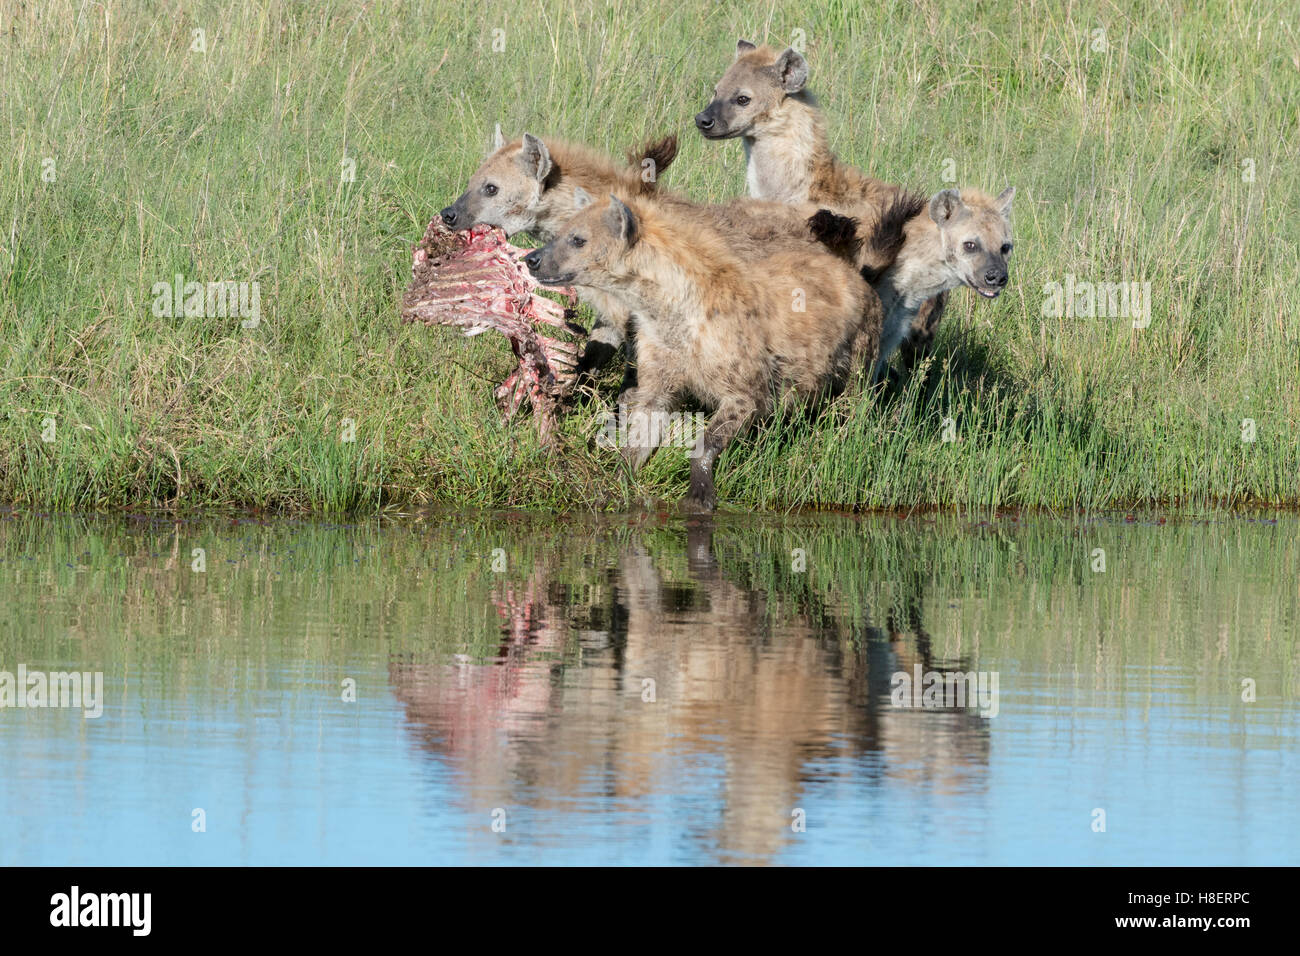 Spotted Hyena (Crocuta crocuta) two adults, fighting for food with reflection in water, Maasai Mara national reserve, - Stock Image